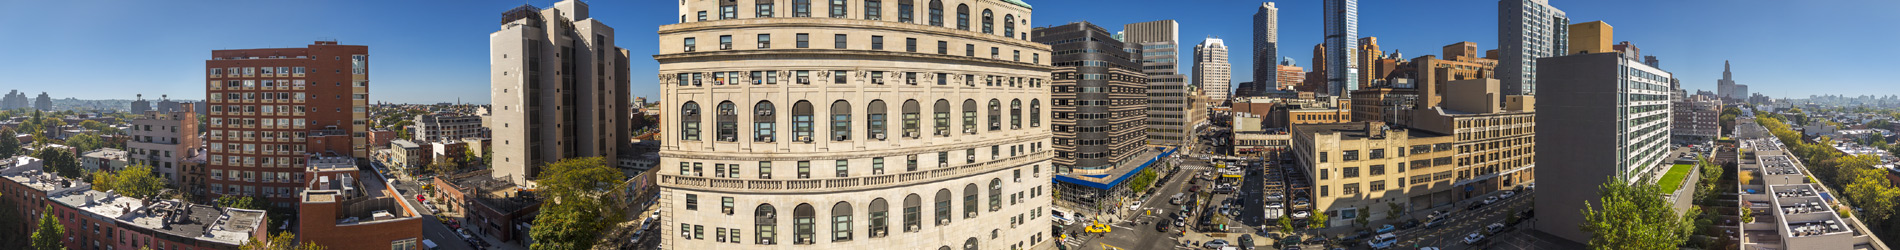 condofutureviewpanoramicaerial smithstreetbrooklyn